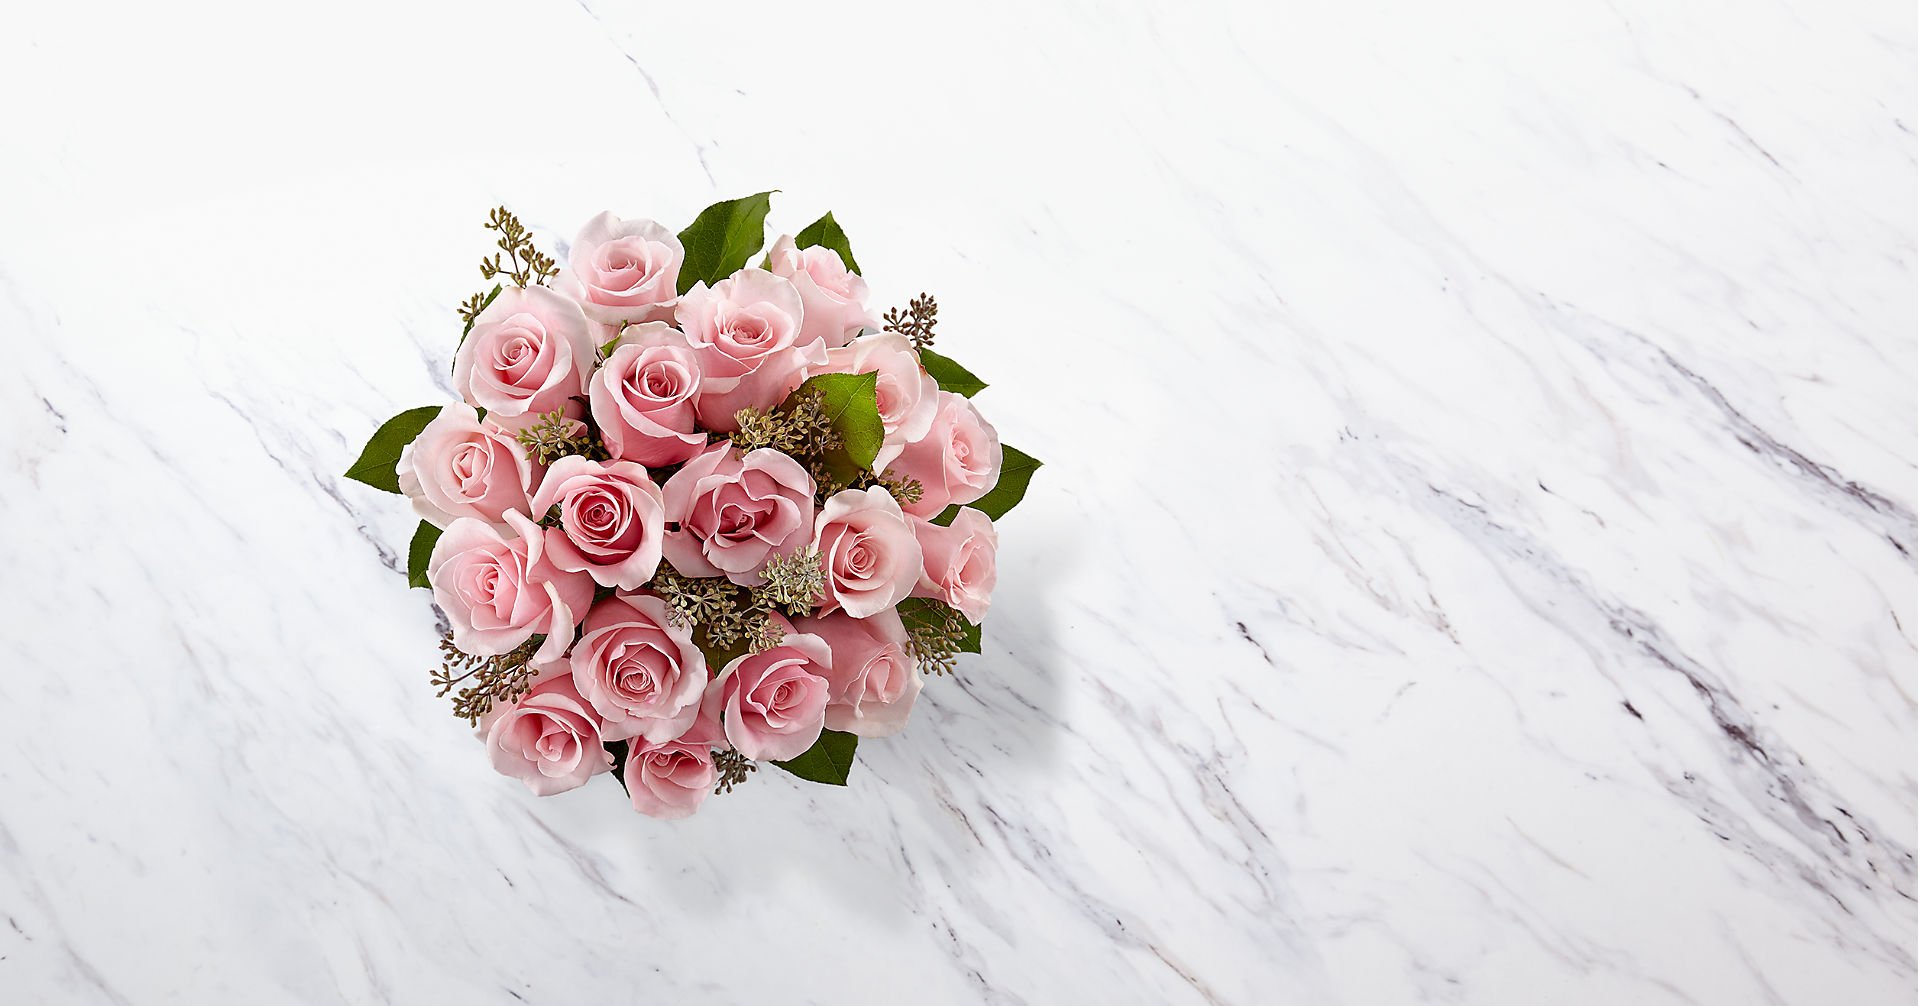 The Long Stem Pink Rose Bouquet - VASE INCLUDED - Image 2 Of 2